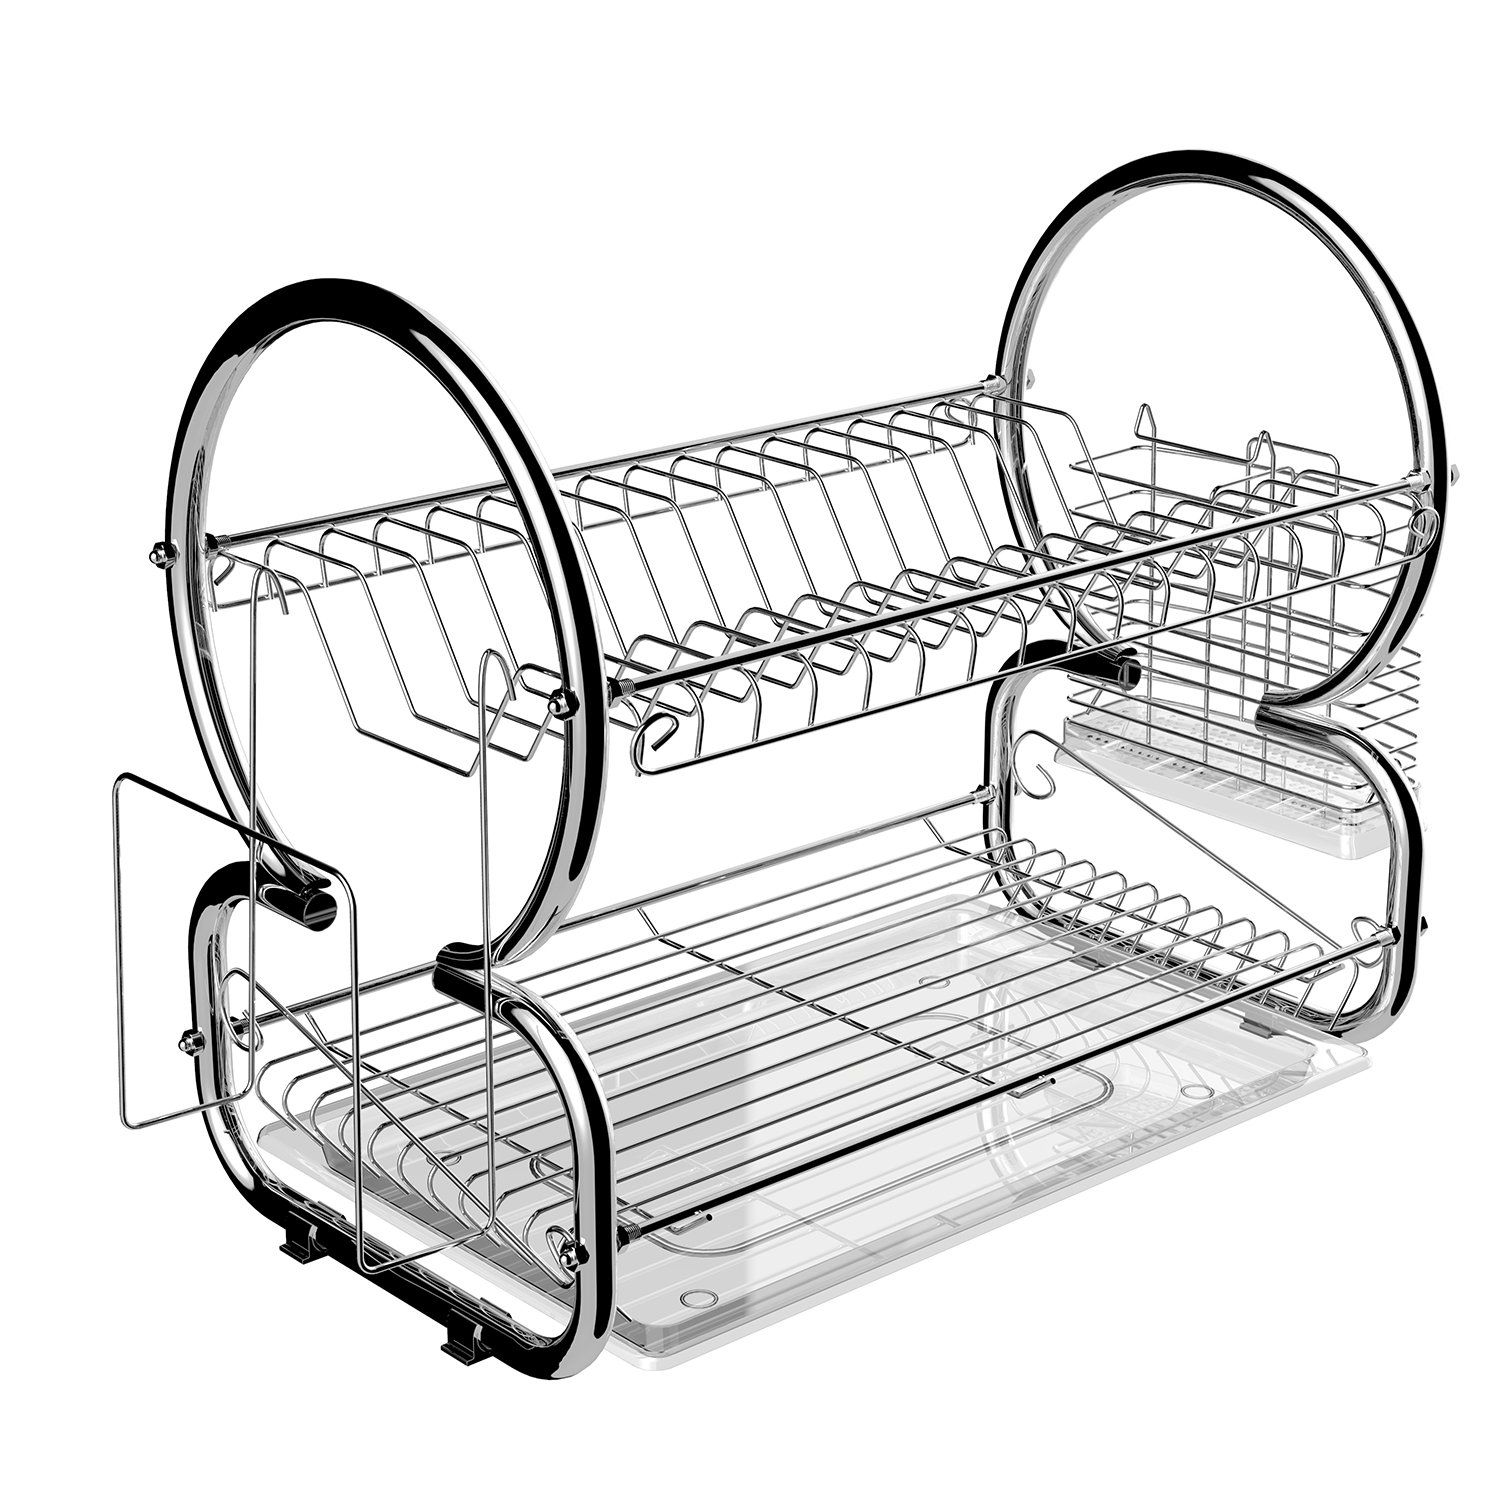 Stainless Steel 2 Tier Dish Rack Kitchen Cup Drainer Rack With